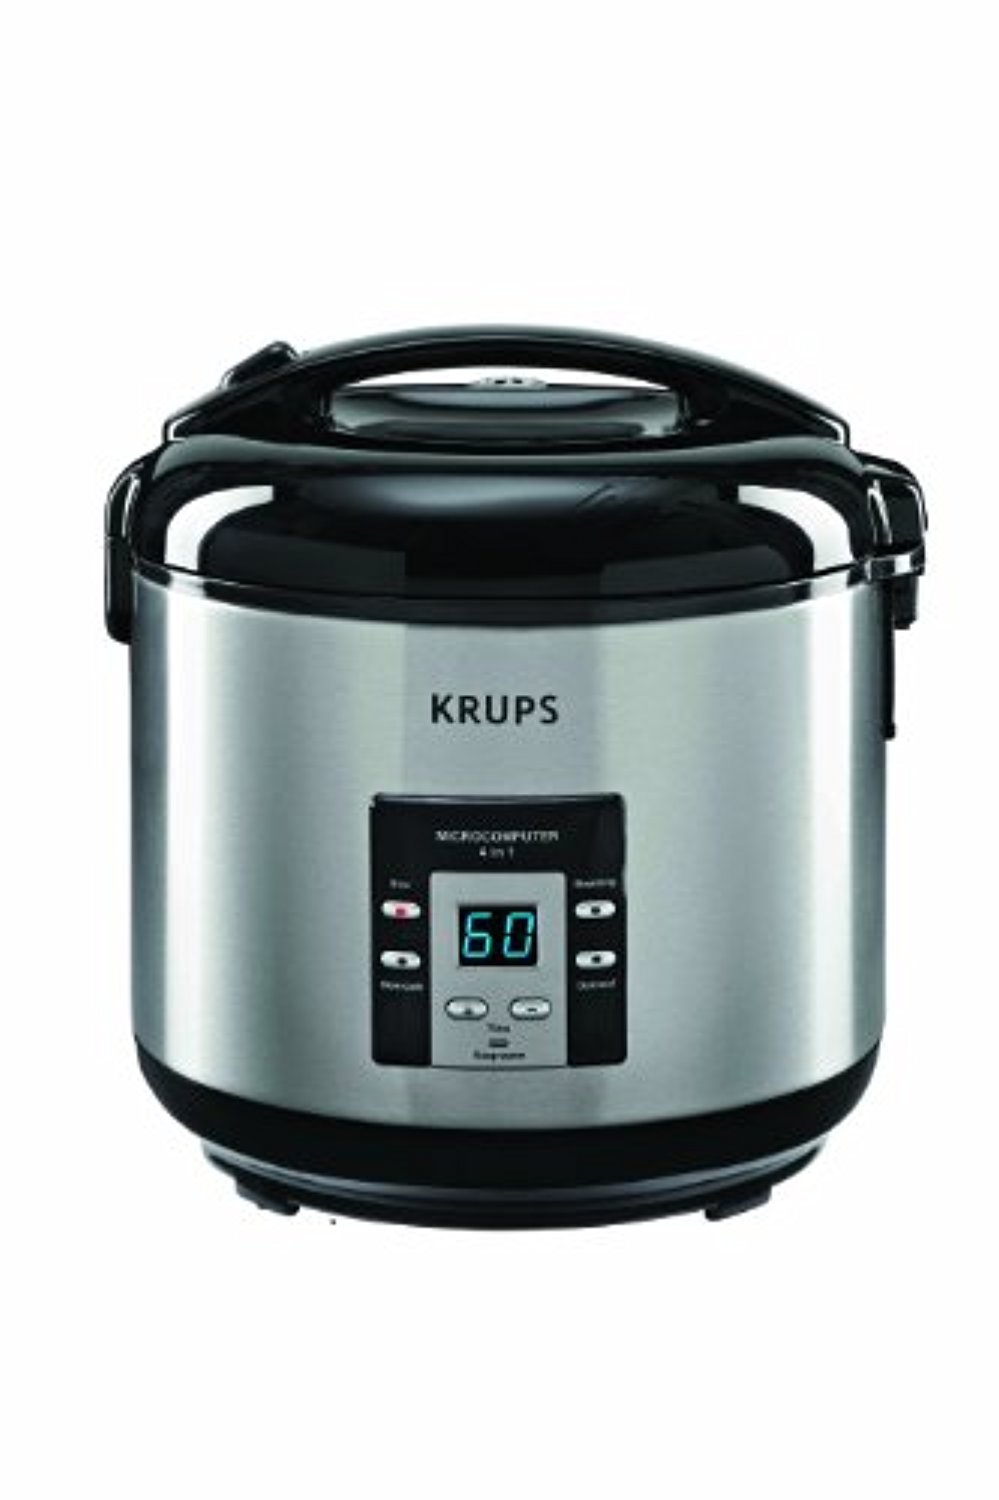 KRUPS RK7011 4-in-1 Rice Cooker and Steamer with Slow Cooking ...